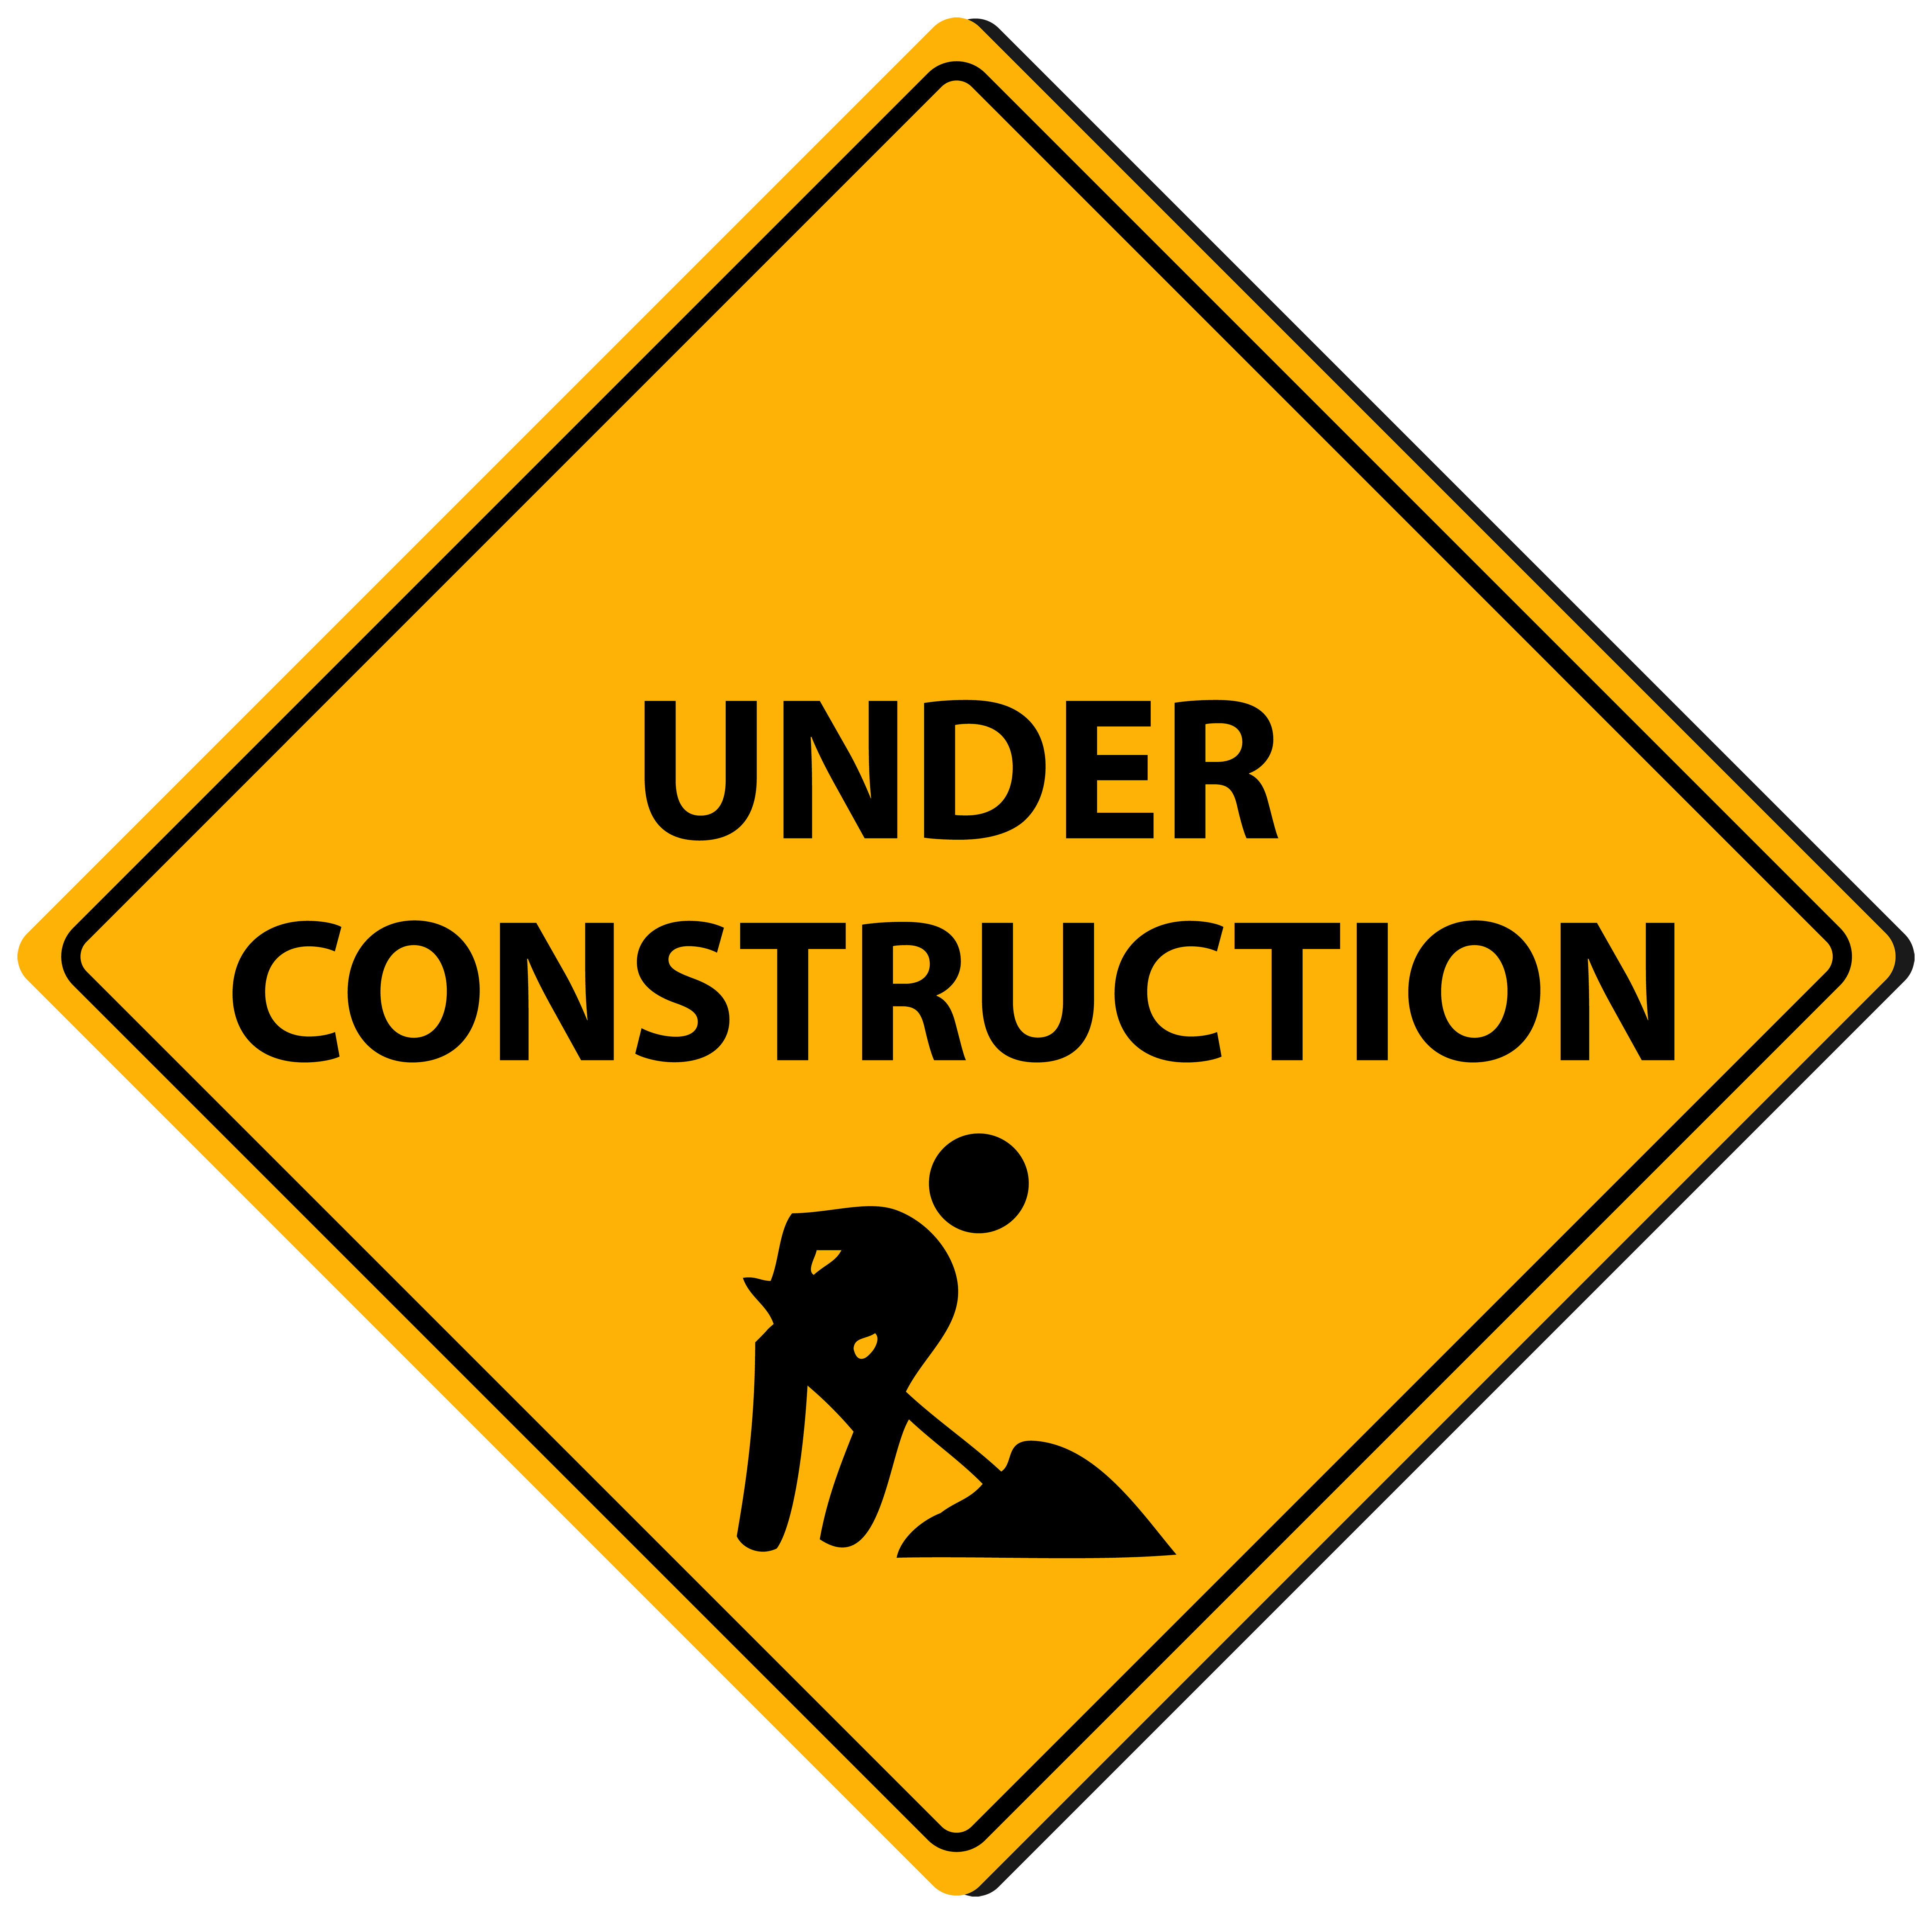 Triangle Under Construction Sign PNG Clipart.